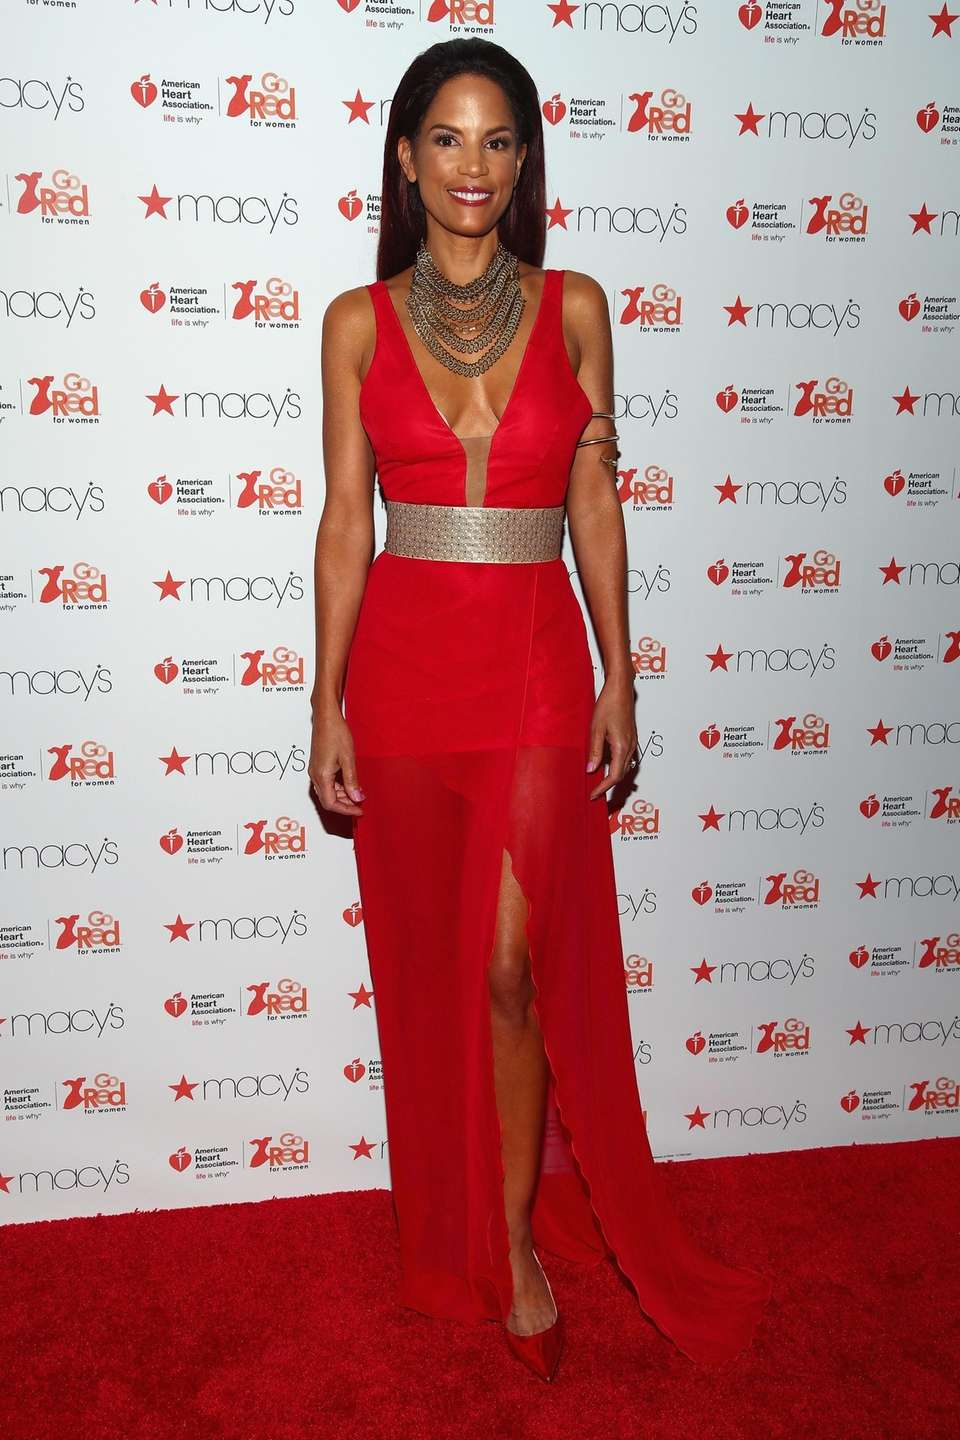 Model Veronica Webb attends the American Heart Association's